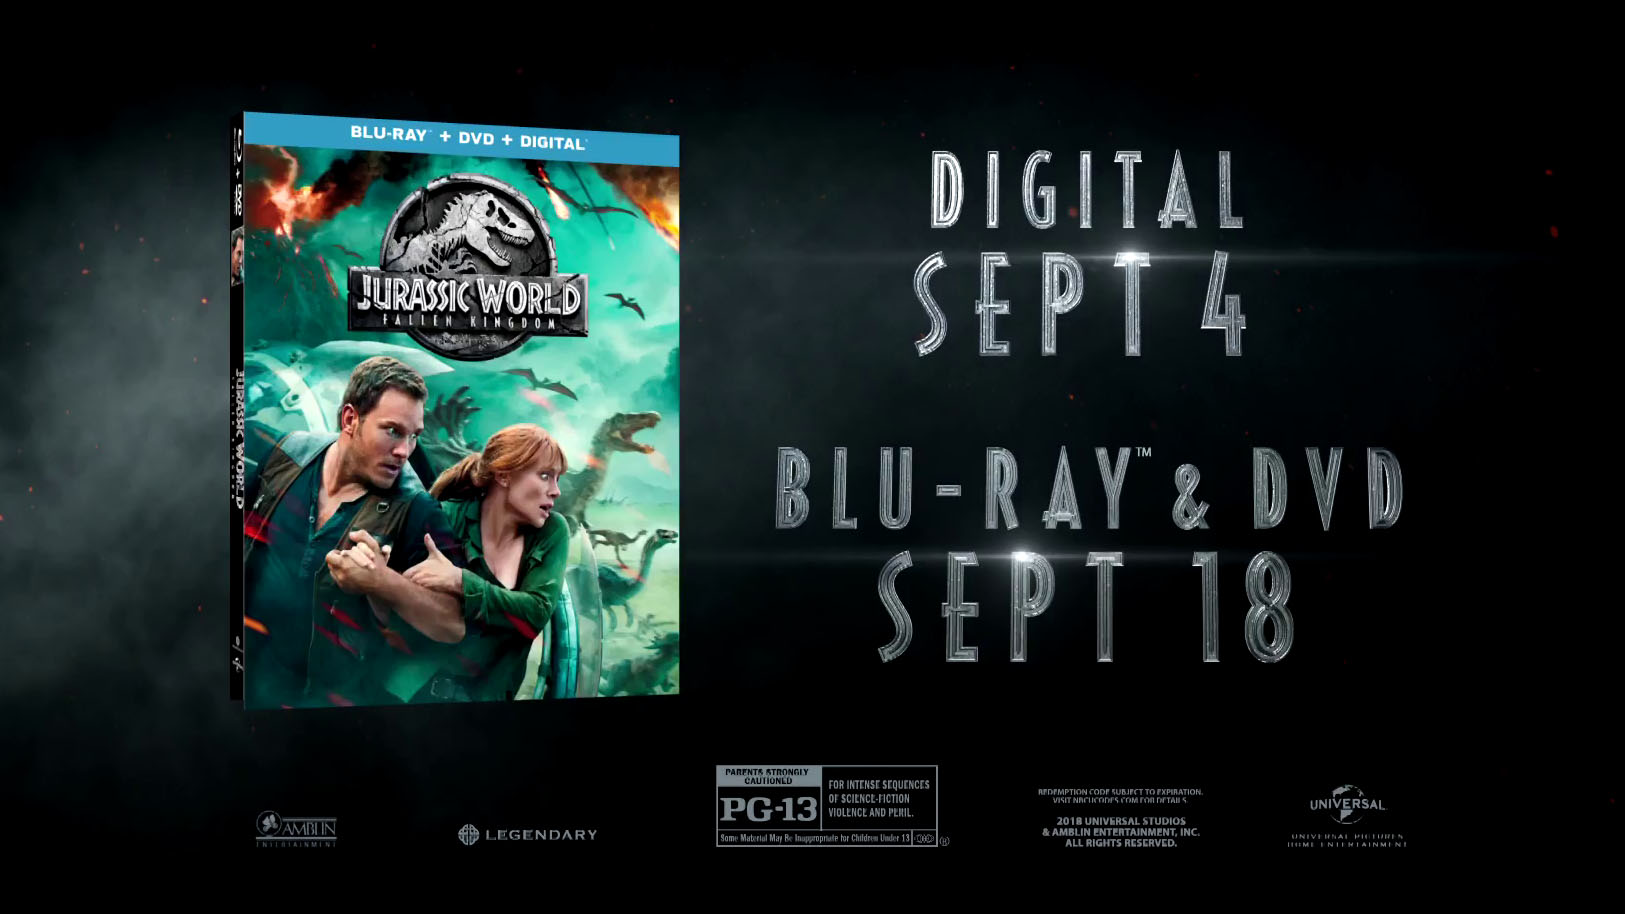 Jurassic World: Fallen Kingdom Blu-Ray/DVD Details | The